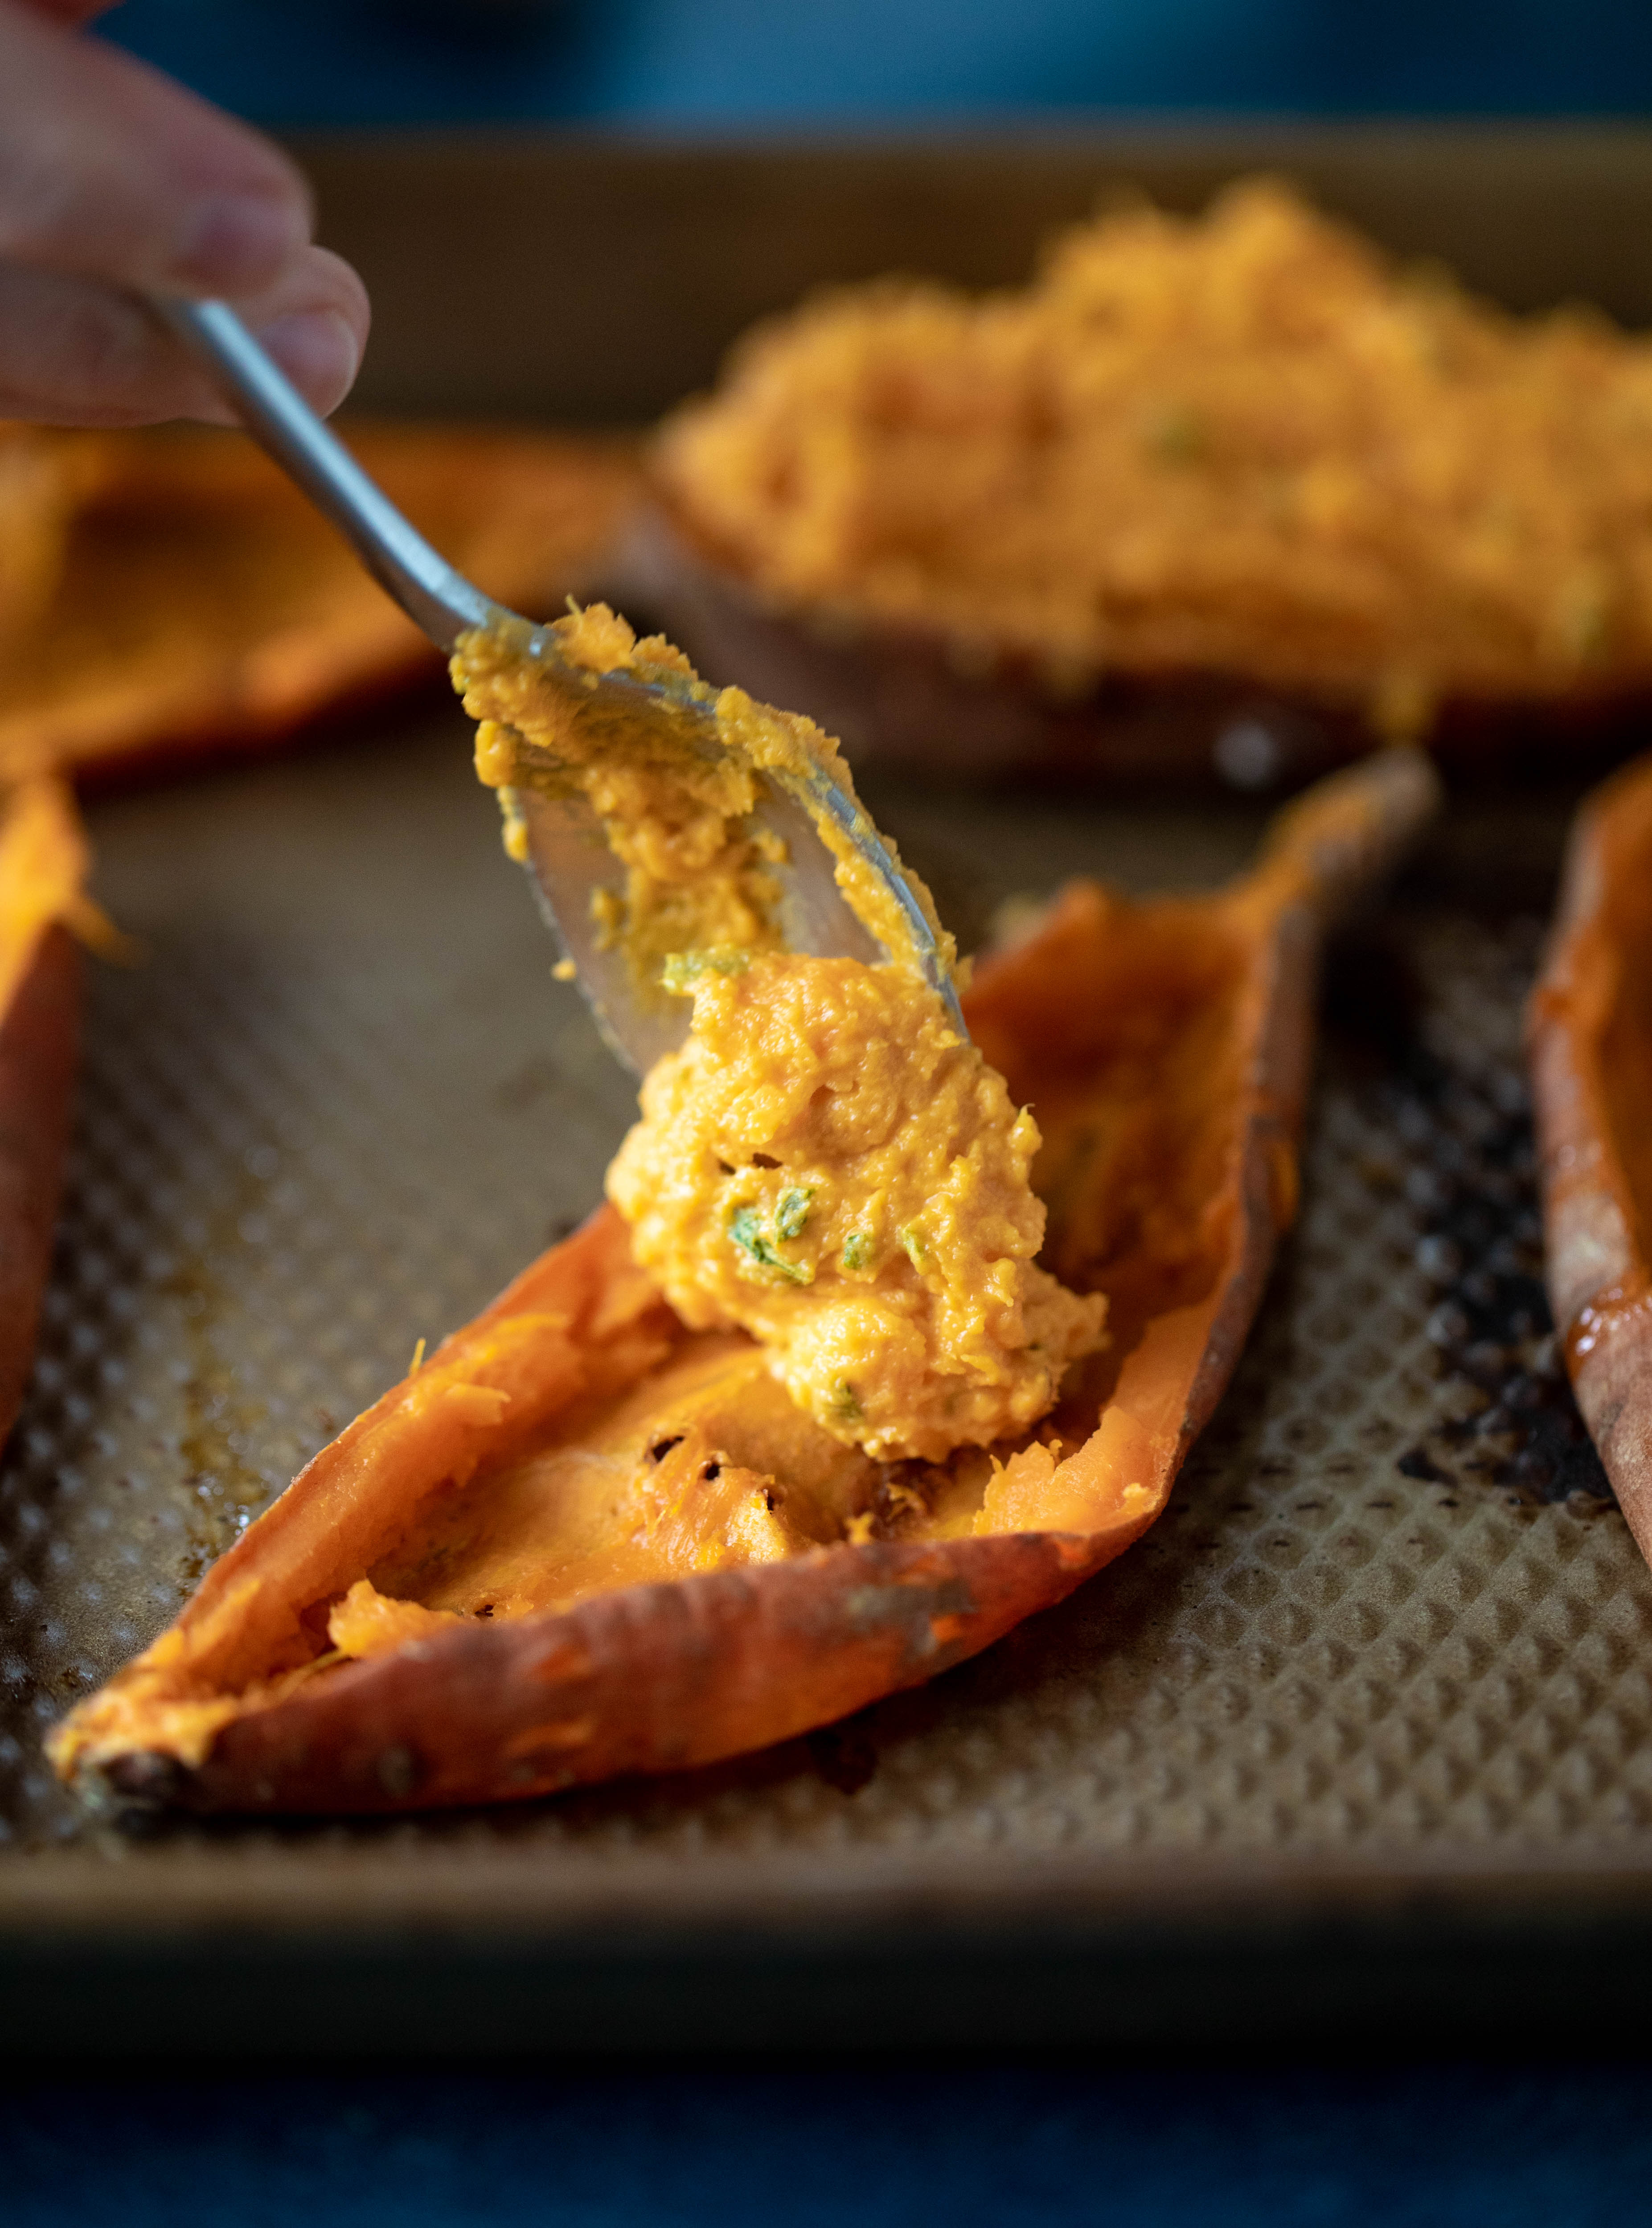 These twice baked sweet potatoes are whipped with crispy sage and pumpkin puree! Topped with cheese and baked until melty, they are super delish.